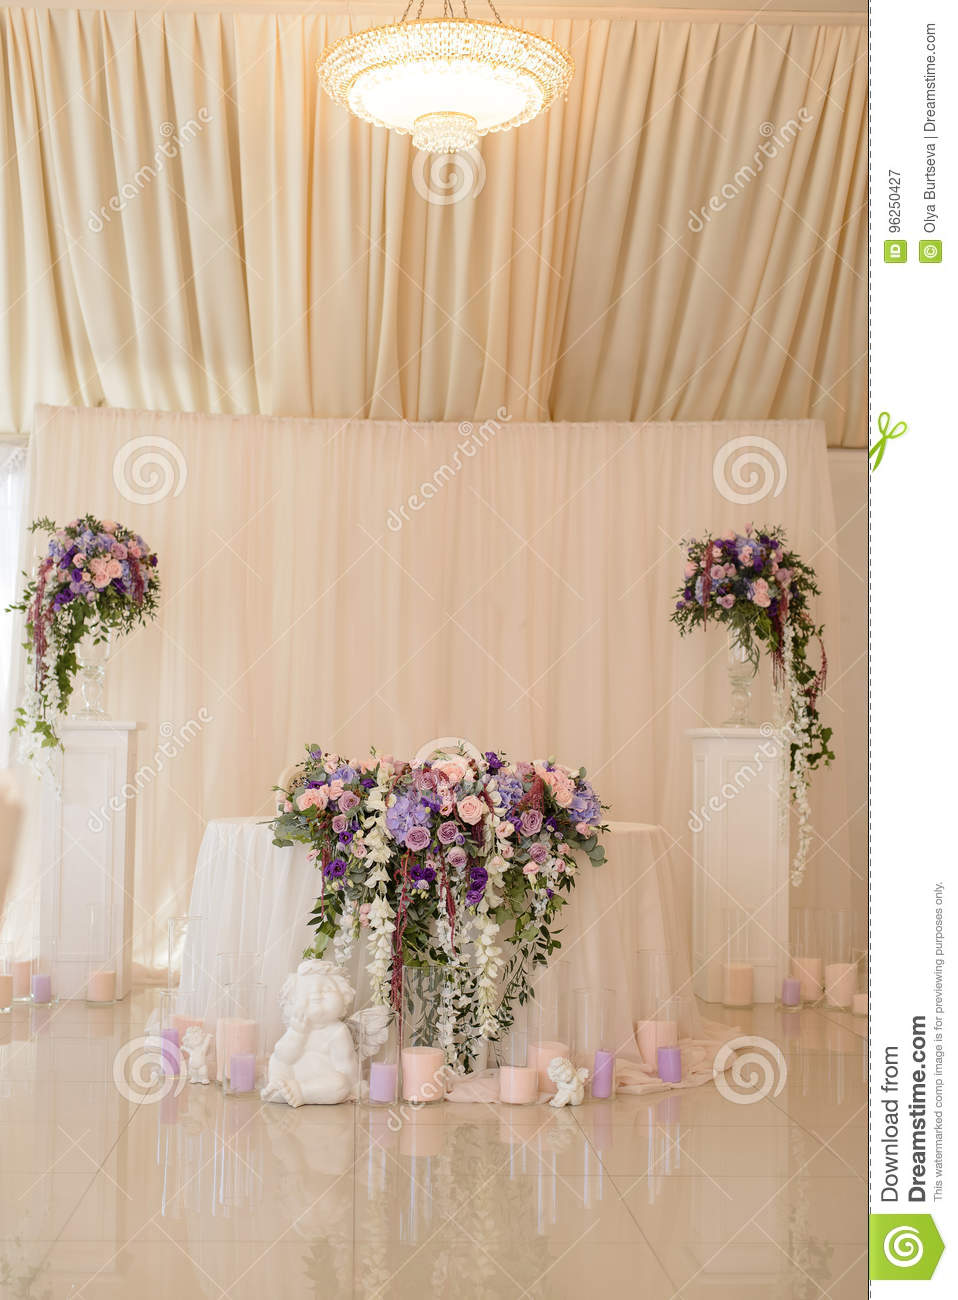 Wedding Table Decoration In Ivory And Lilac Colors With The Initials